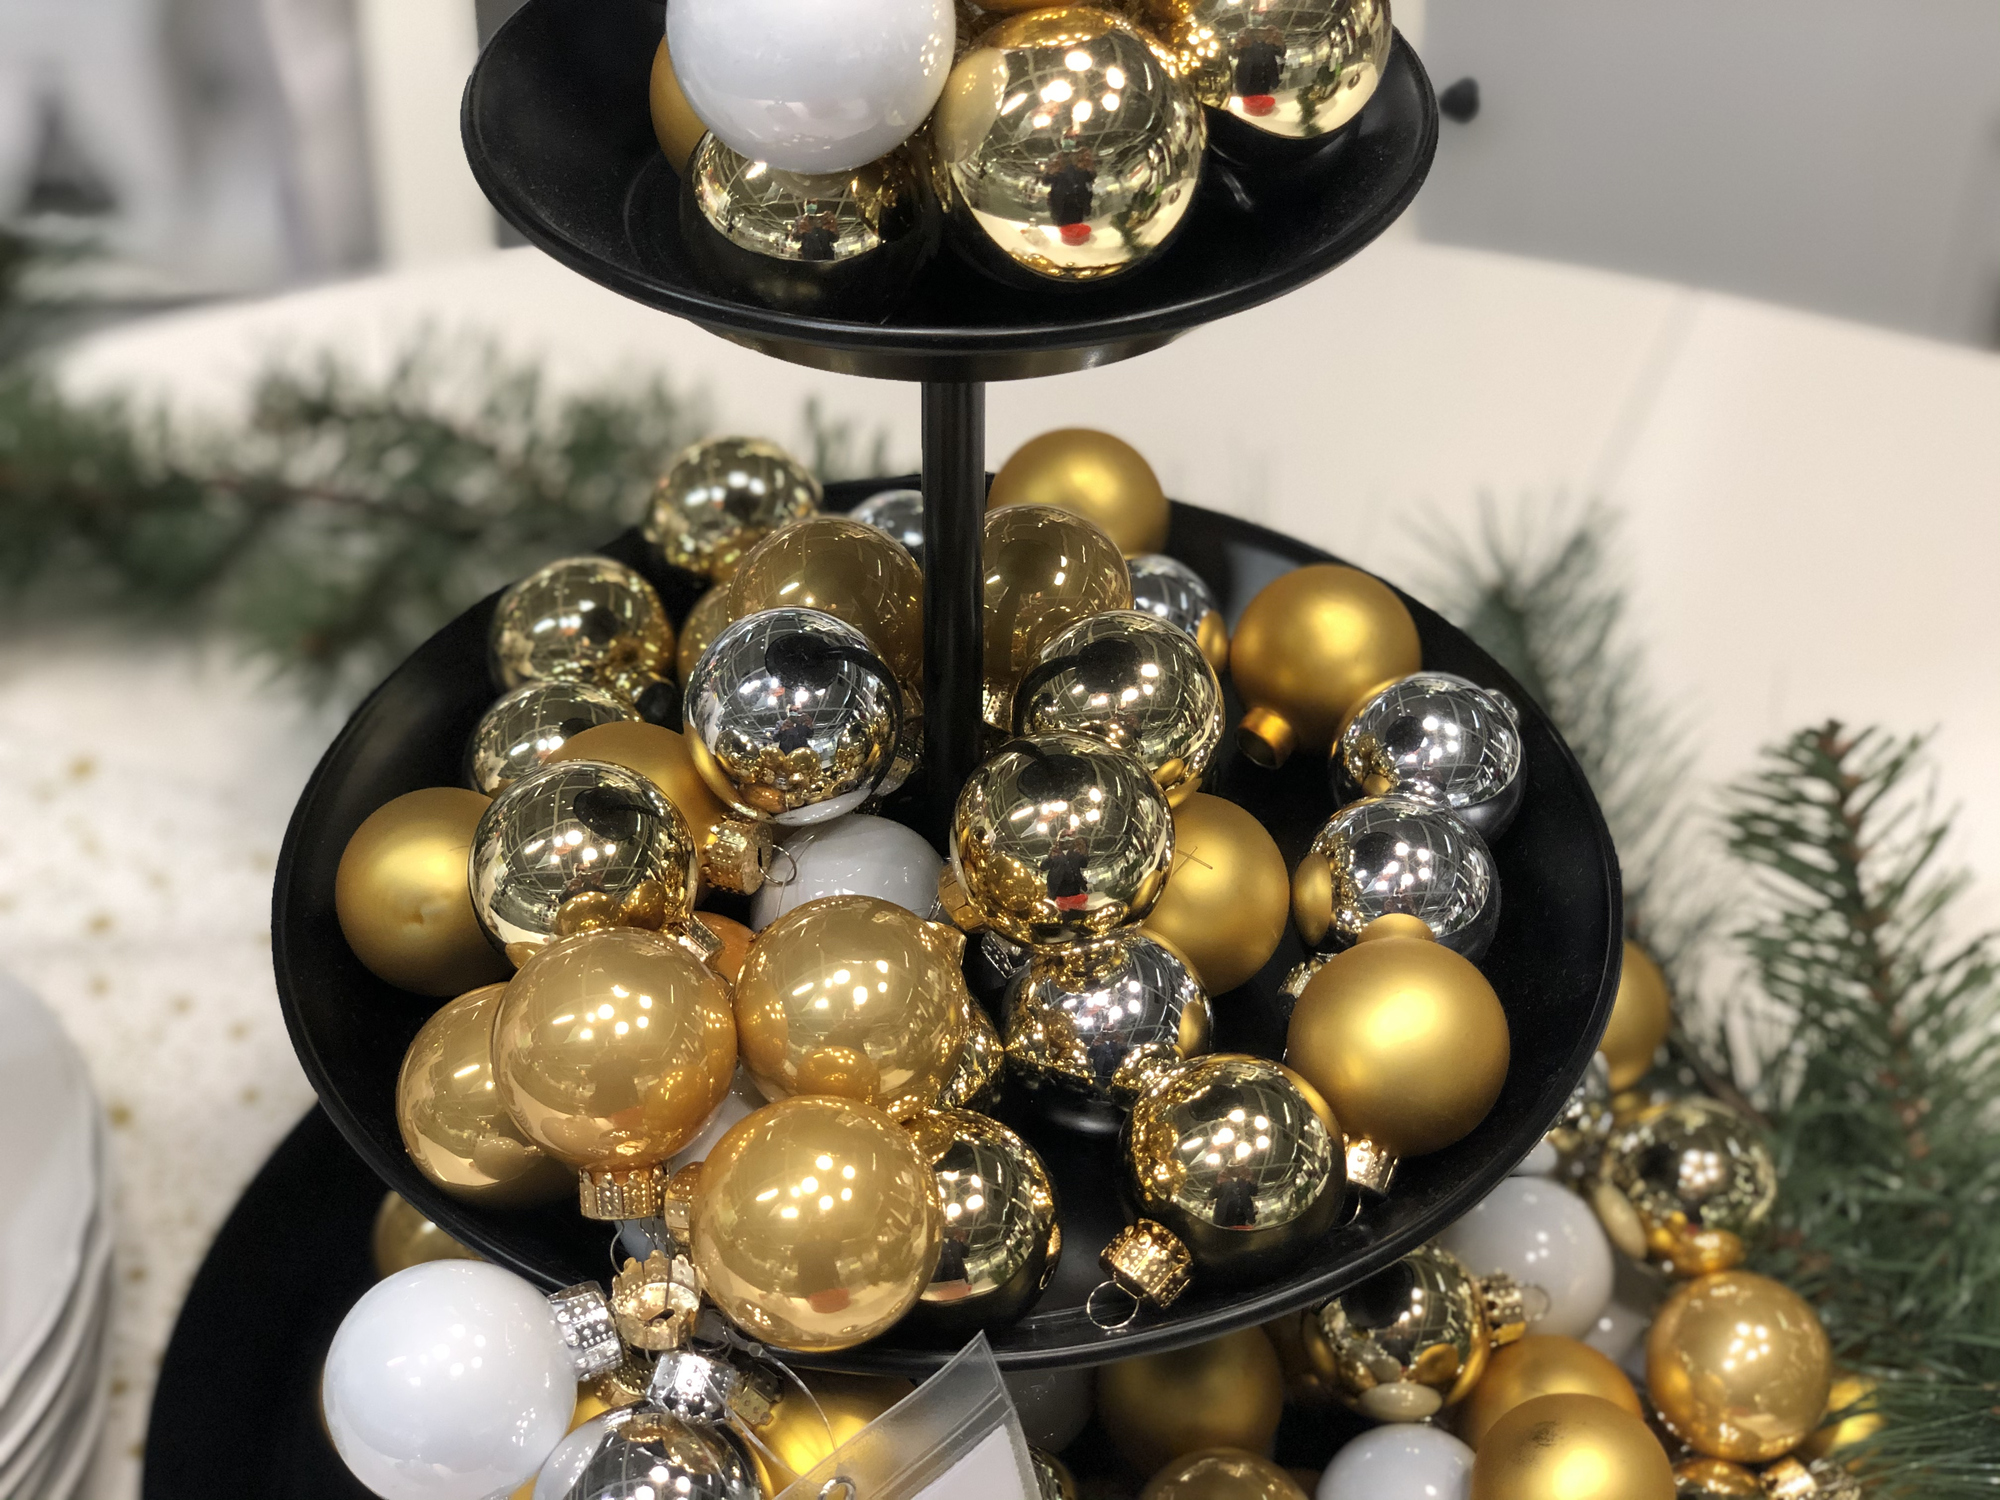 Rather than putting sweets and treats on your favorite tiered tray, load it up with pretty Christmas ball ornaments for a festive tree-like centerpiece.